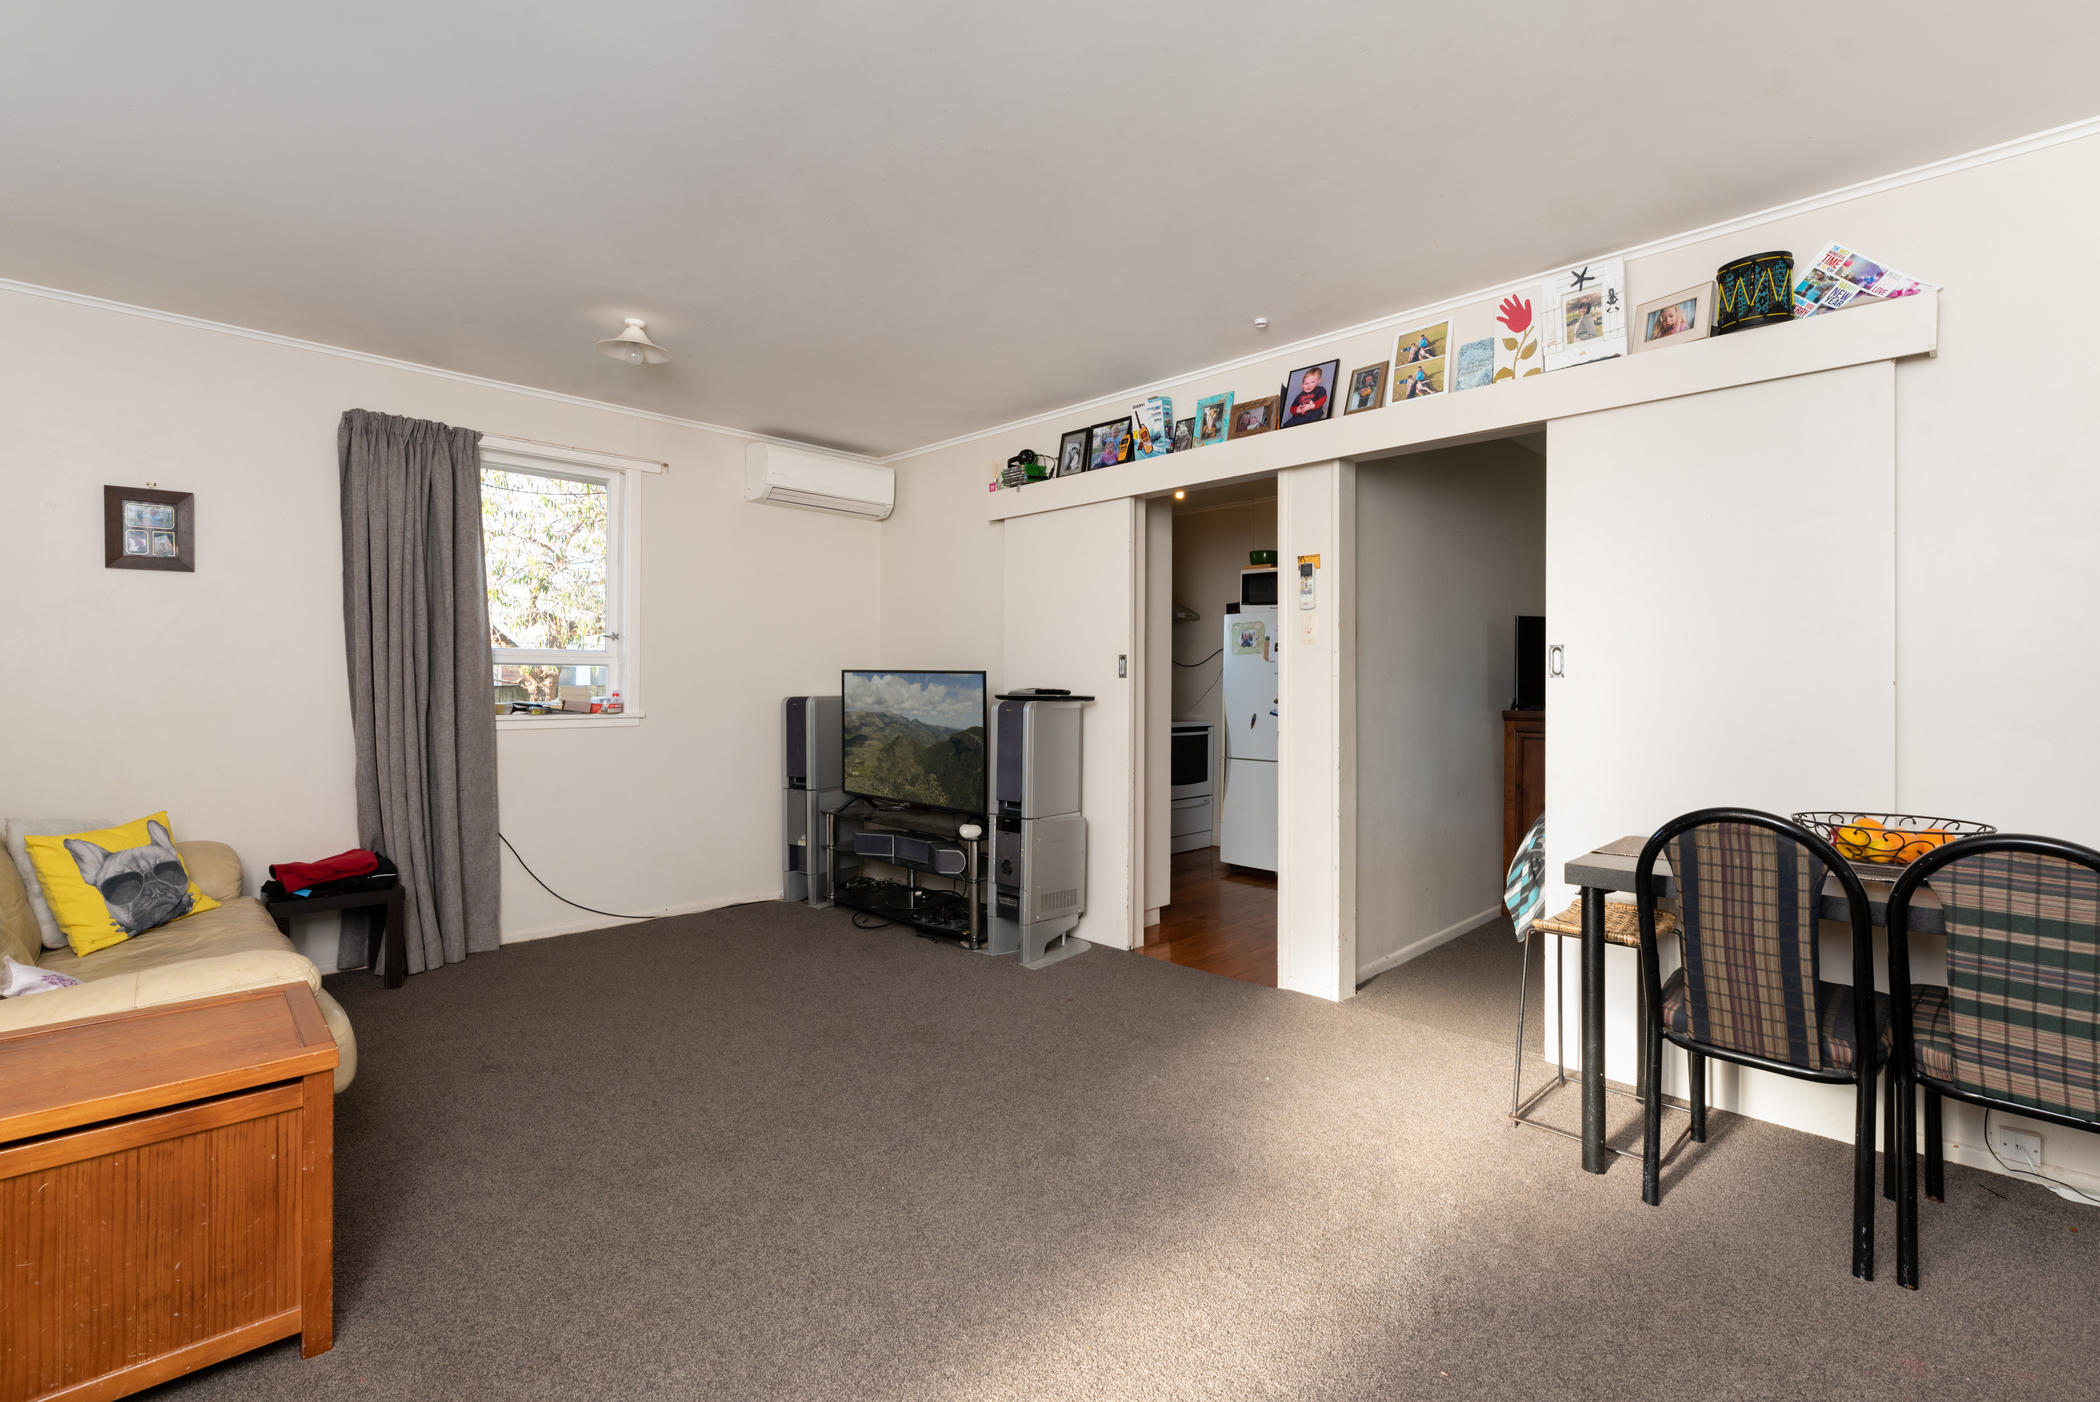 Miraculous House For Sale In Tauranga South Bay Of Plenty For Bay Of Home Interior And Landscaping Ologienasavecom